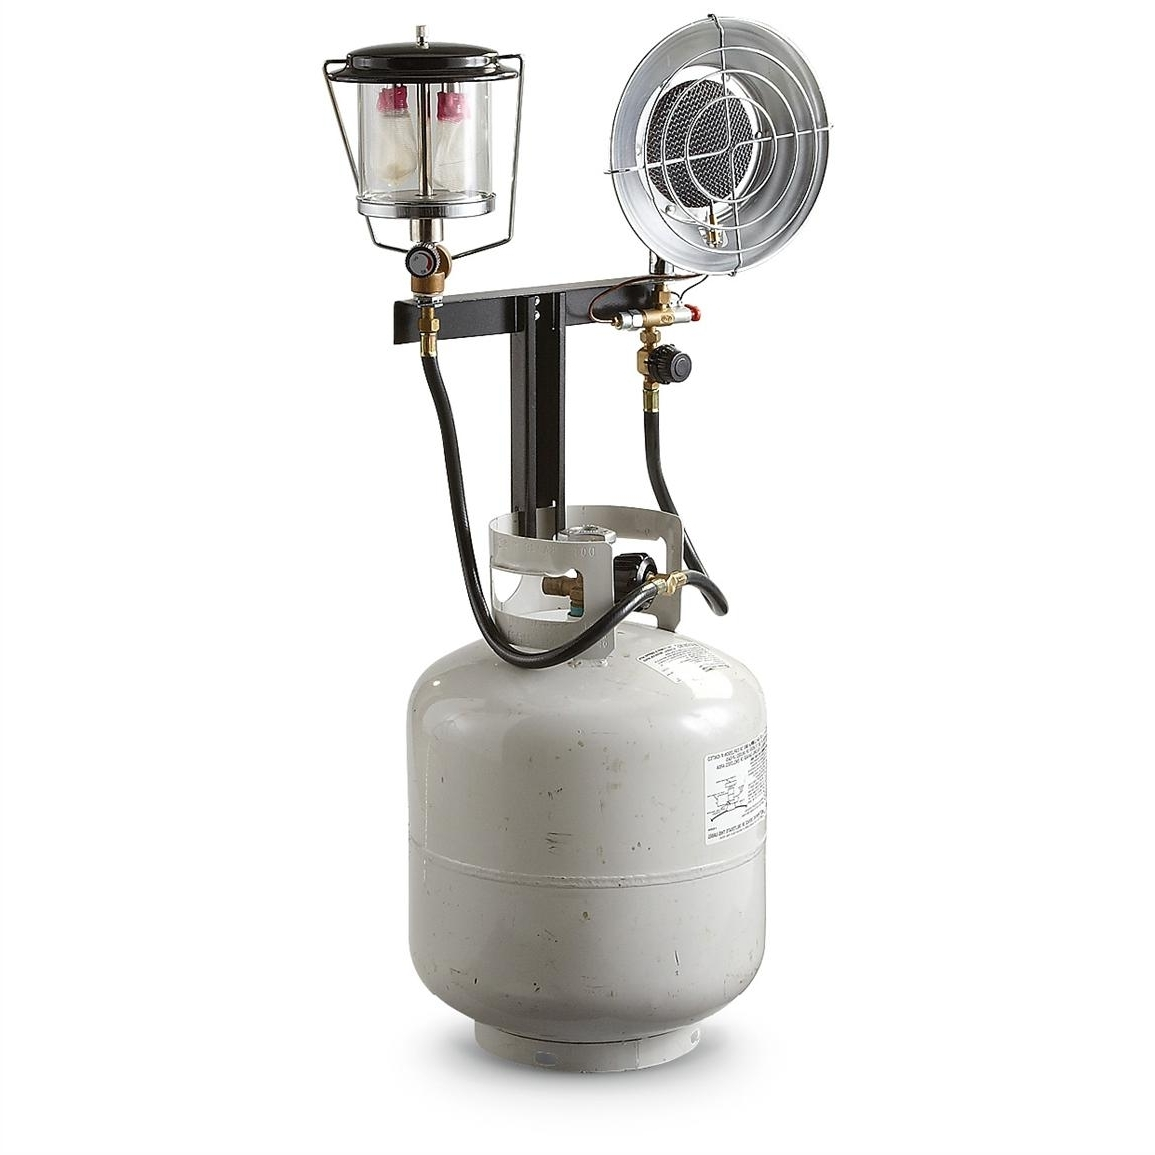 Propane: Propane Lantern Pertaining To Trendy Outdoor Propane Lanterns (Gallery 11 of 20)